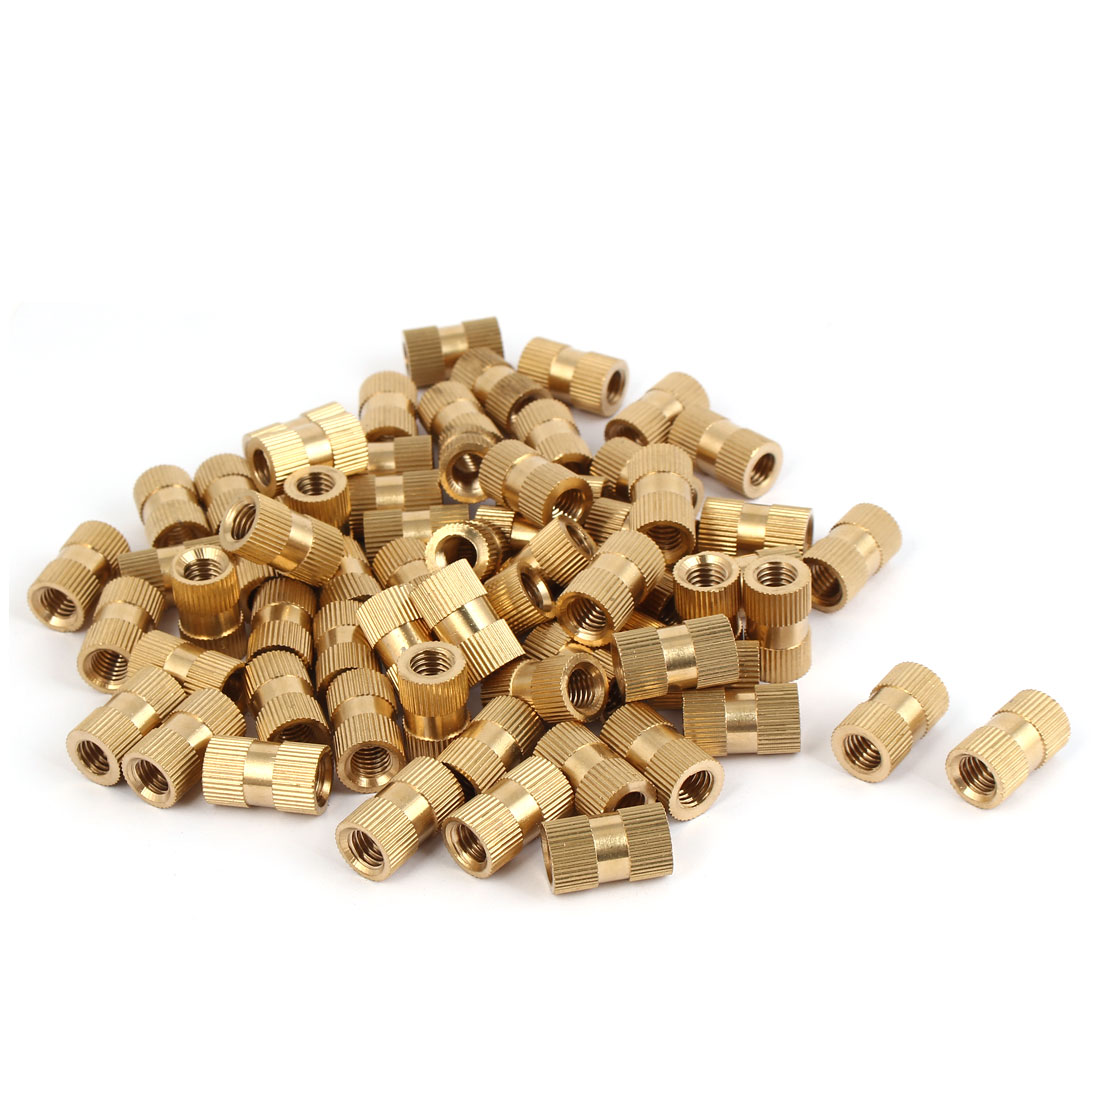 M8 x 20mm Female Thread Brass Knurled Threaded Round Insert Embedded Nuts 100PCS